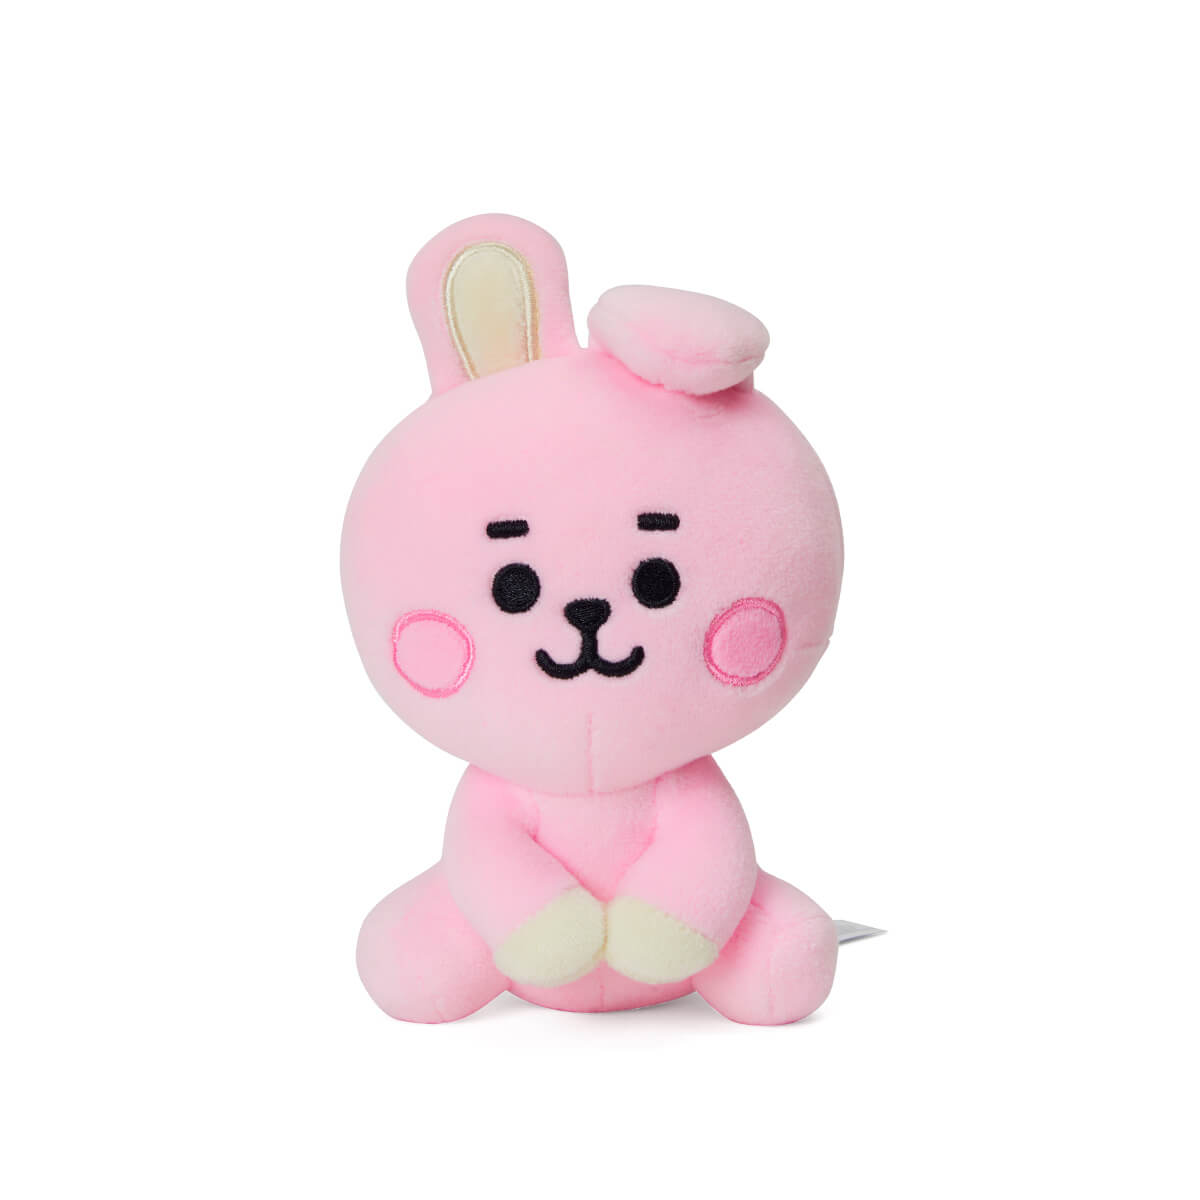 BT21 COOKY Baby Sitting Doll 4.7 inch